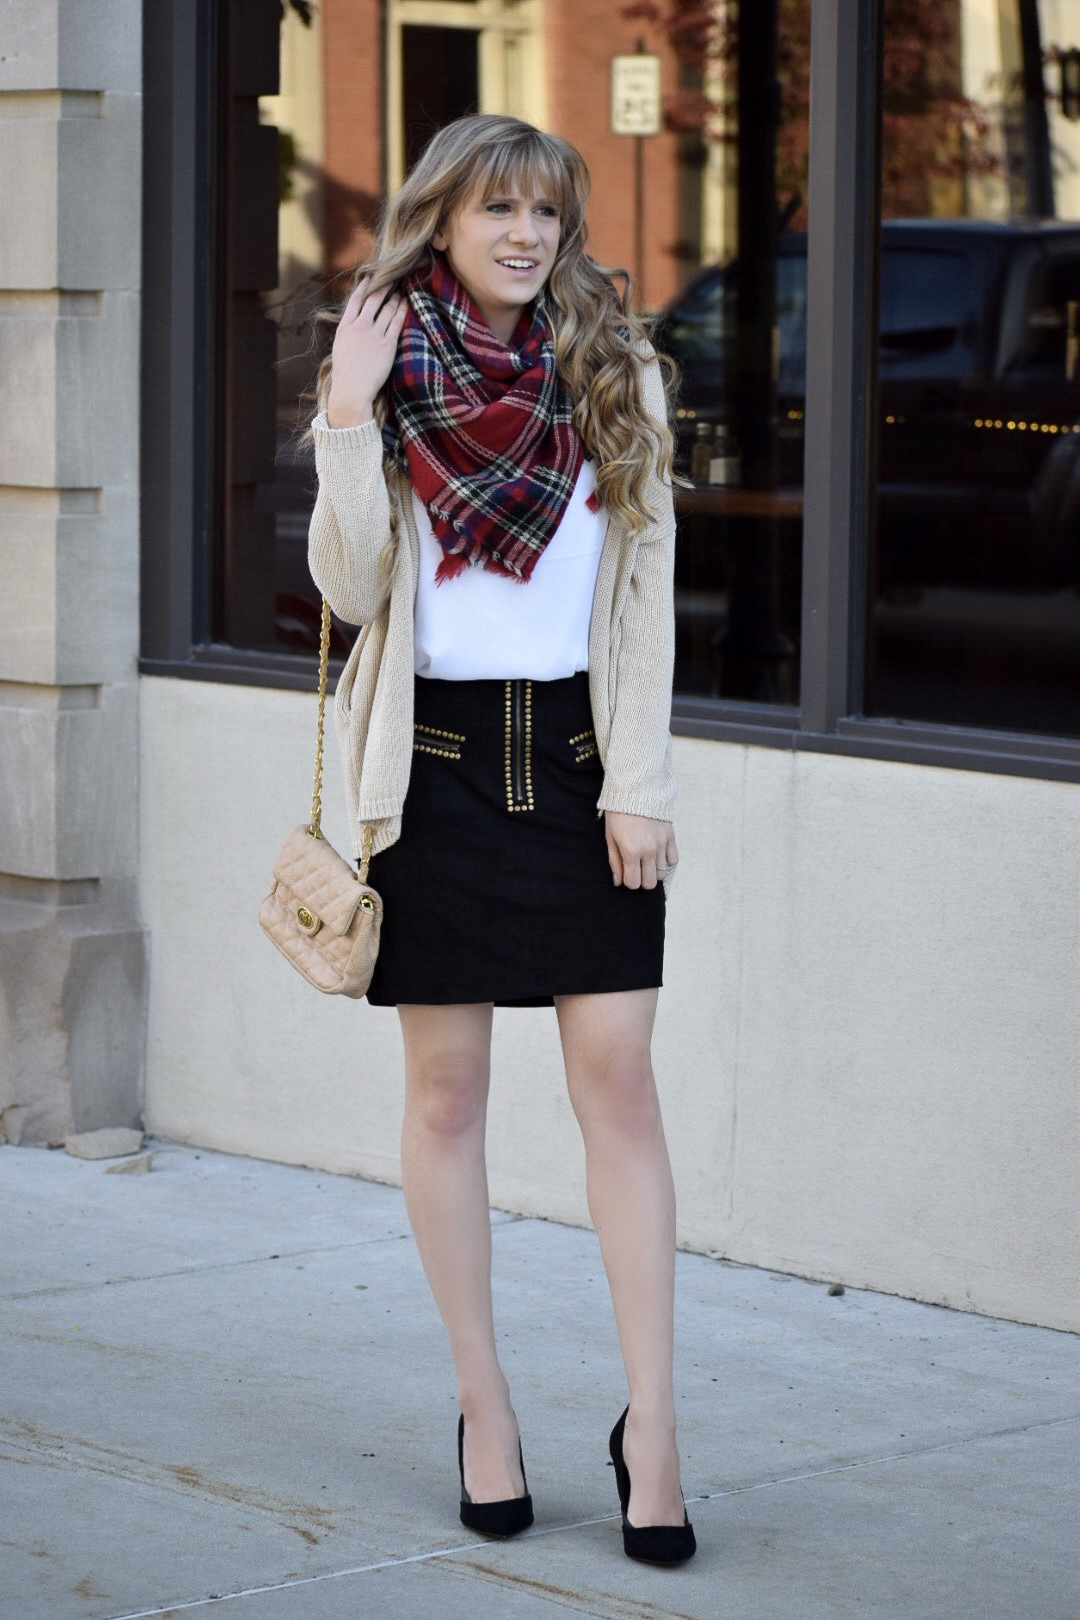 blanket scarf and studded skirt